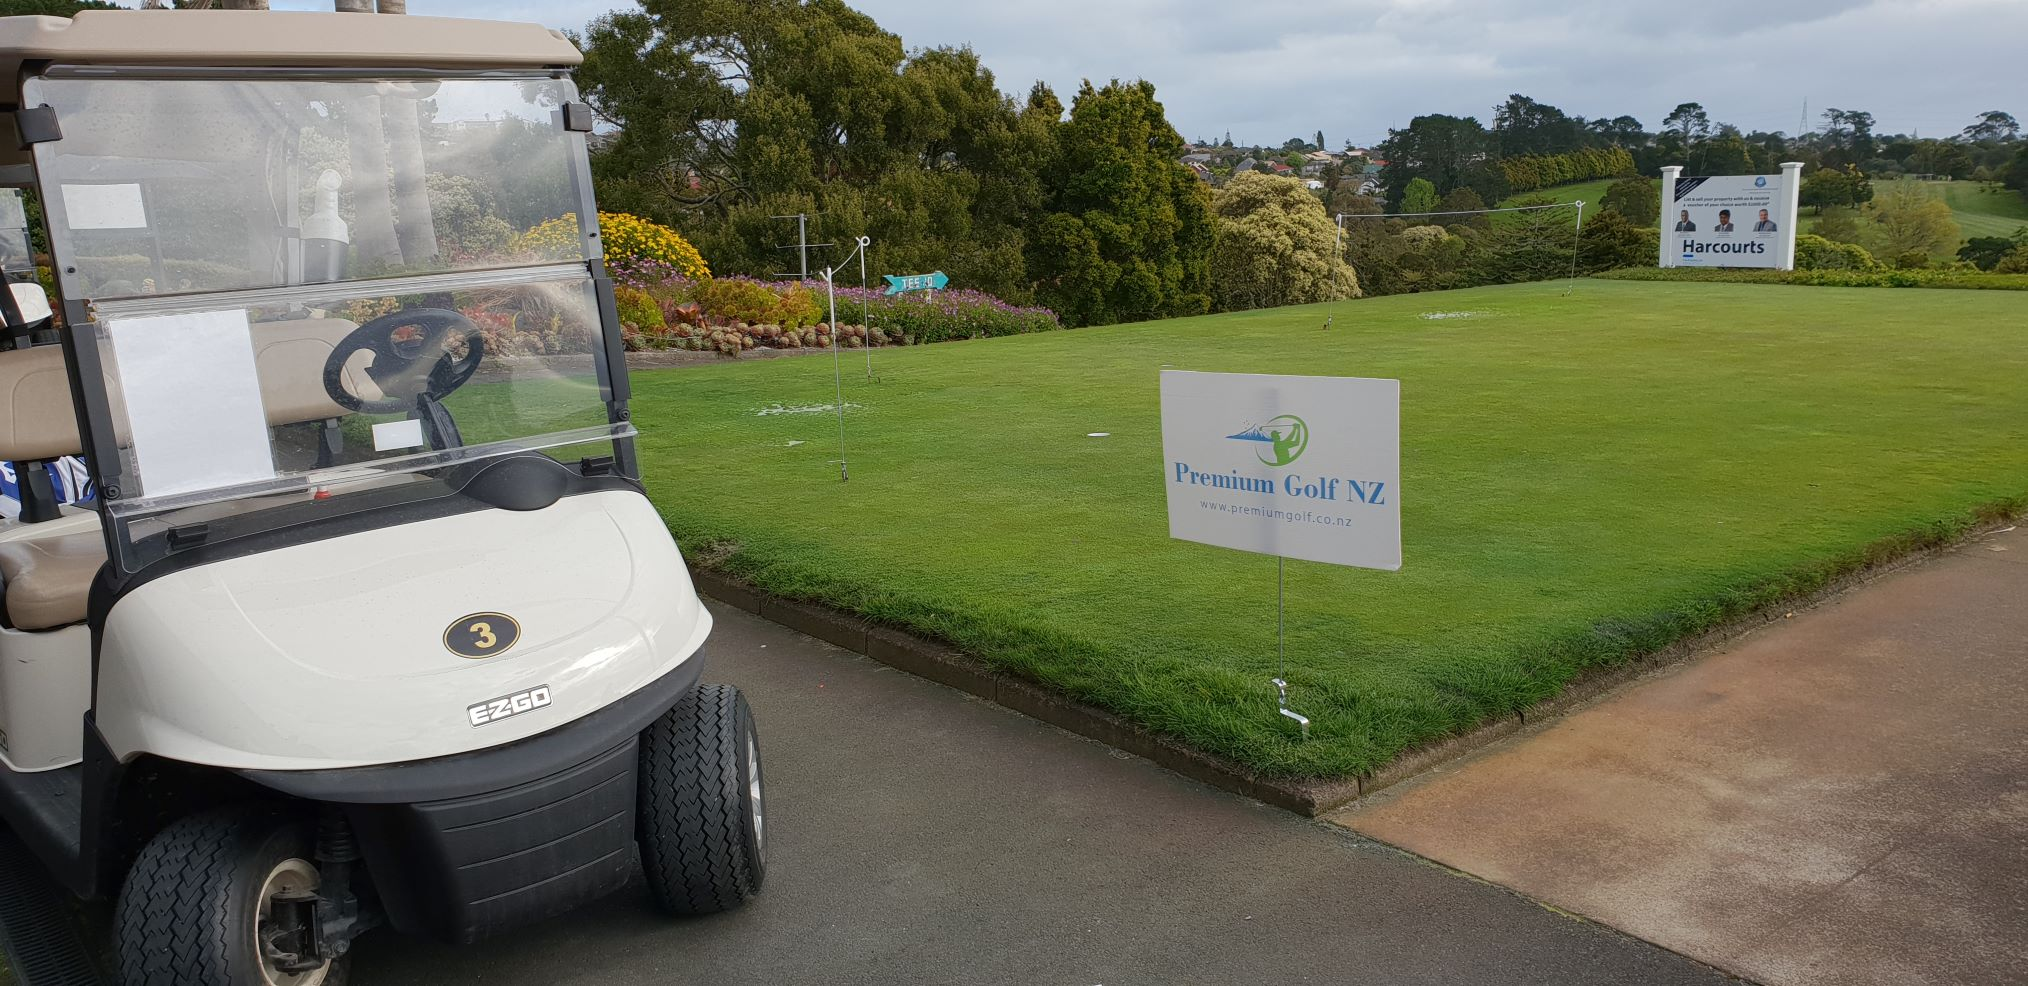 get ready for your Round on the Maungakiekie putting green